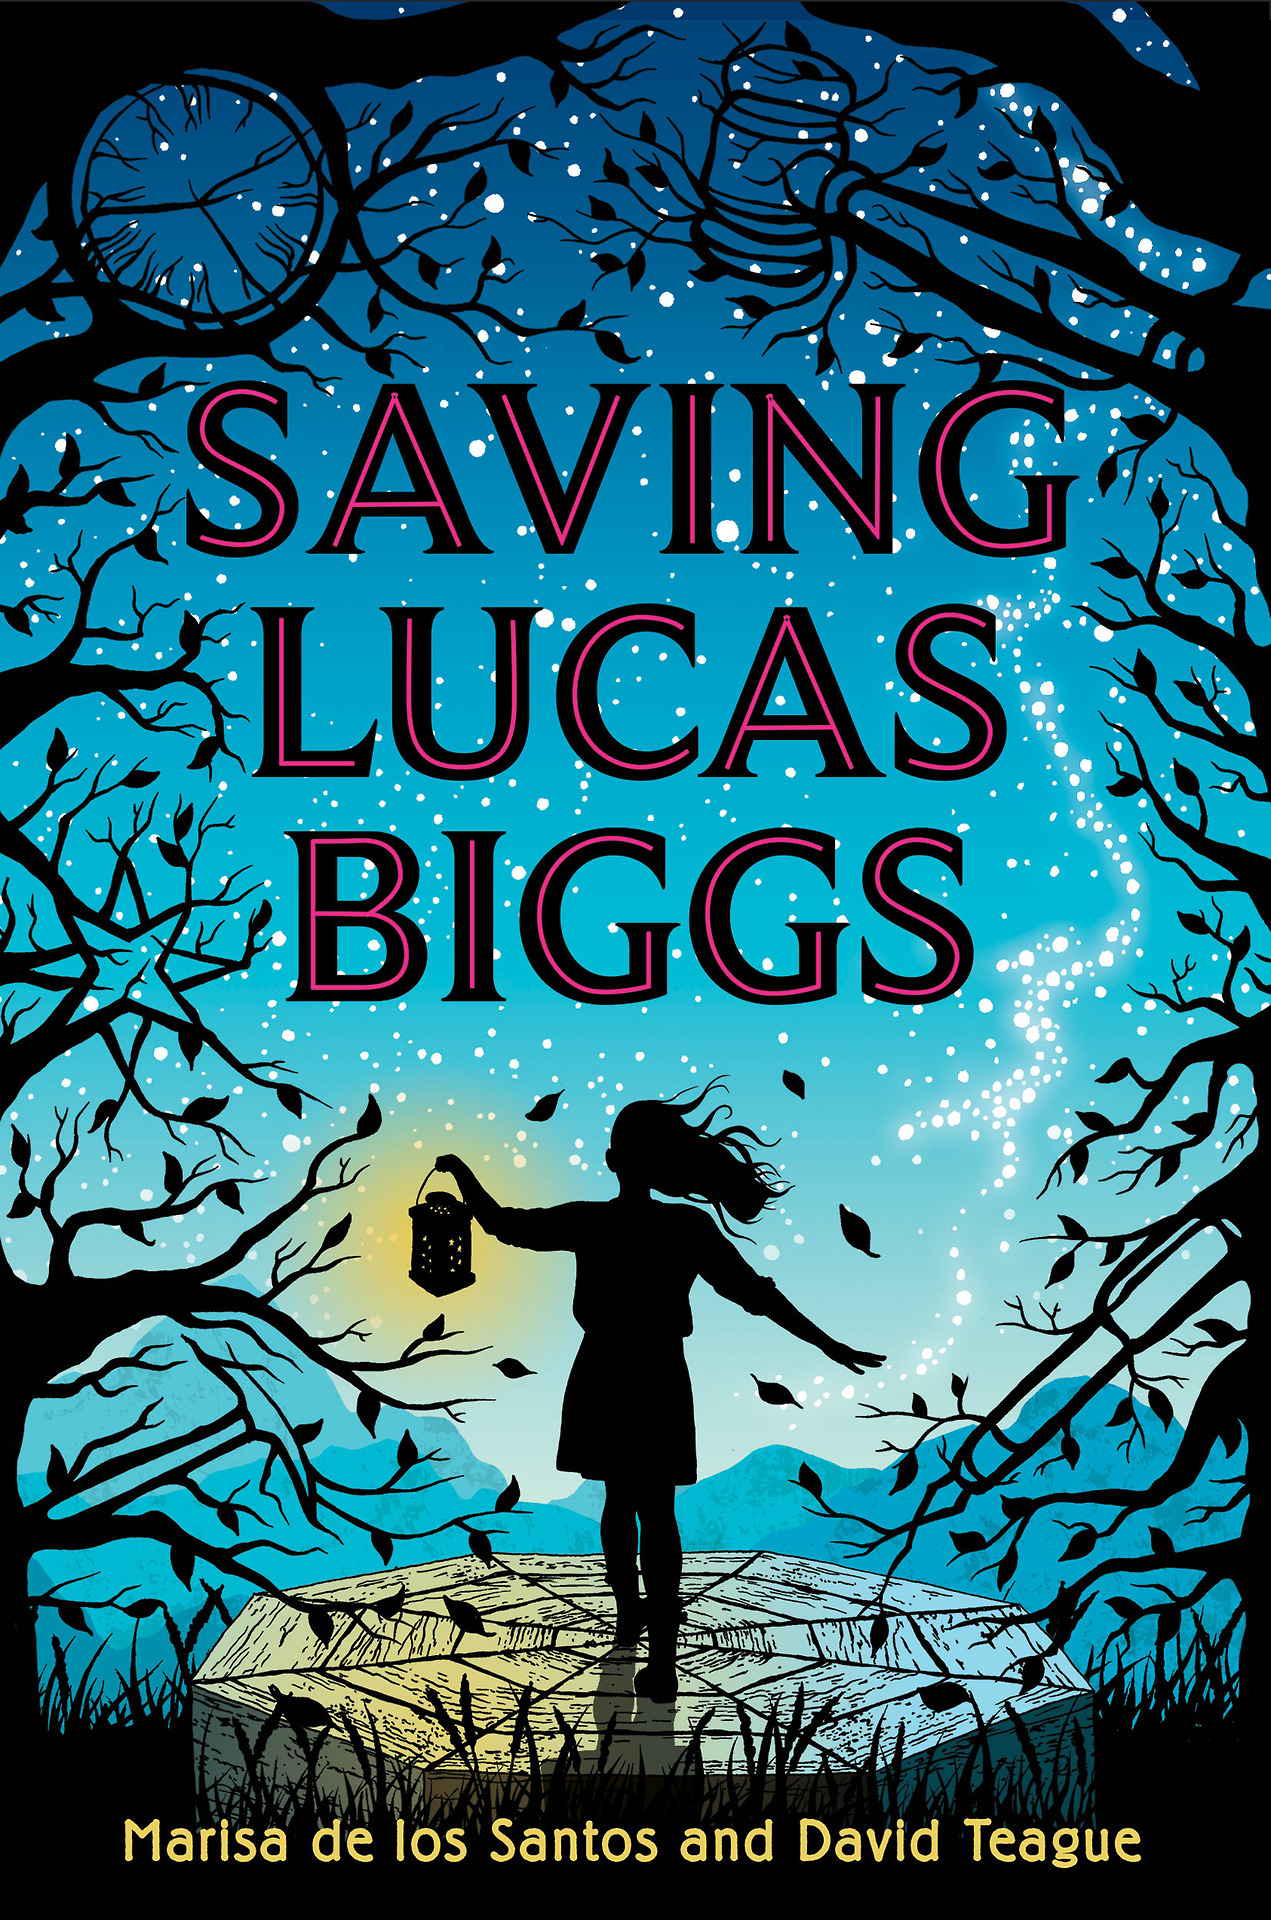 Saving Lucas Biggs by Marisa de los Santos & David Teague